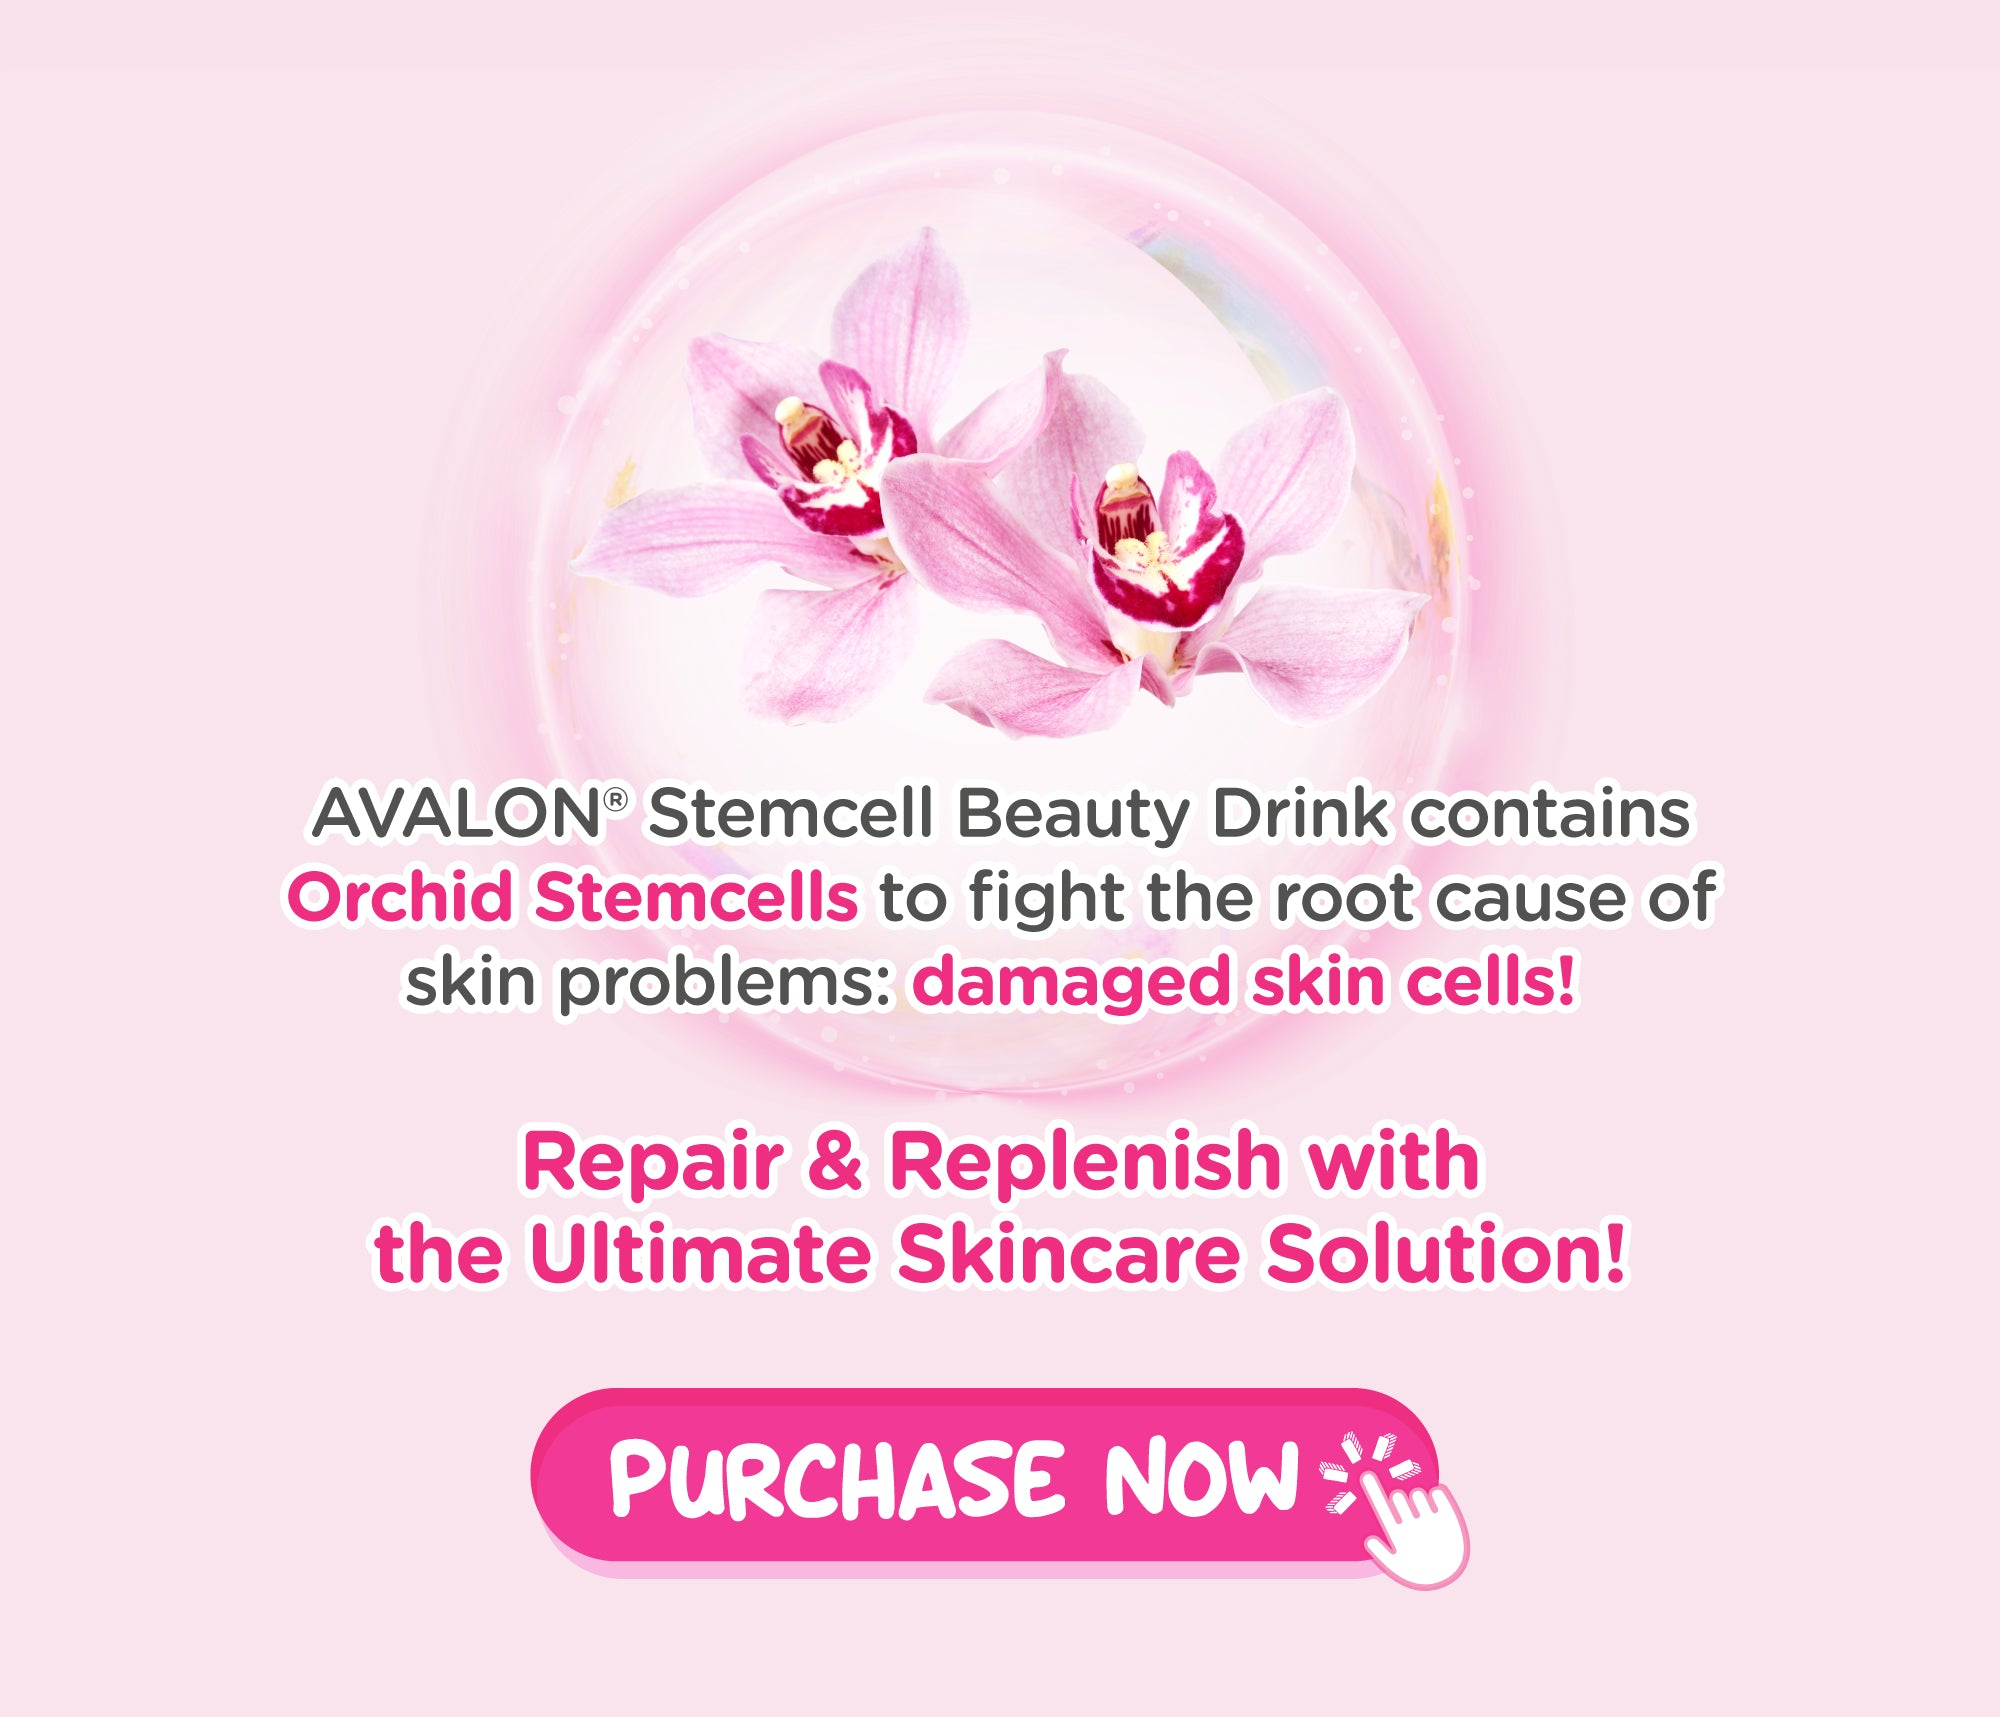 Avalon® Stemcell Beauty Drink contains Orchid Stemcells to solve the root cause of all skin issues which is damaged skin cells!